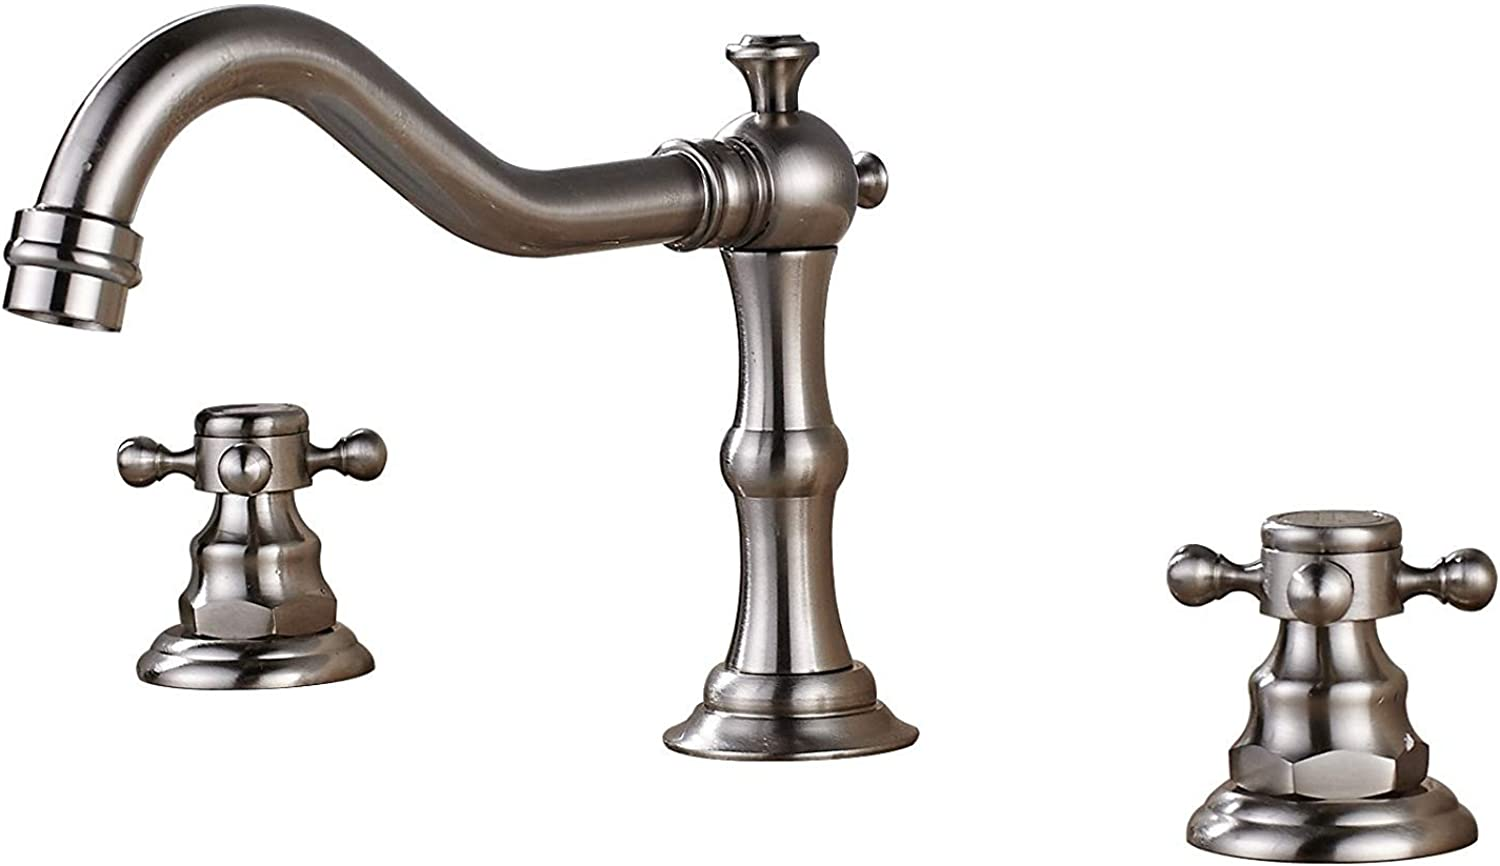 QIMEIM Bathroom Sink Vessel Faucet Basin Mixer Taps Washbasin Faucet Deck Mounted Three Holes Double Handles Widespread Brushed Nickel Sink Tap for Bathroom Kitchen Faucet